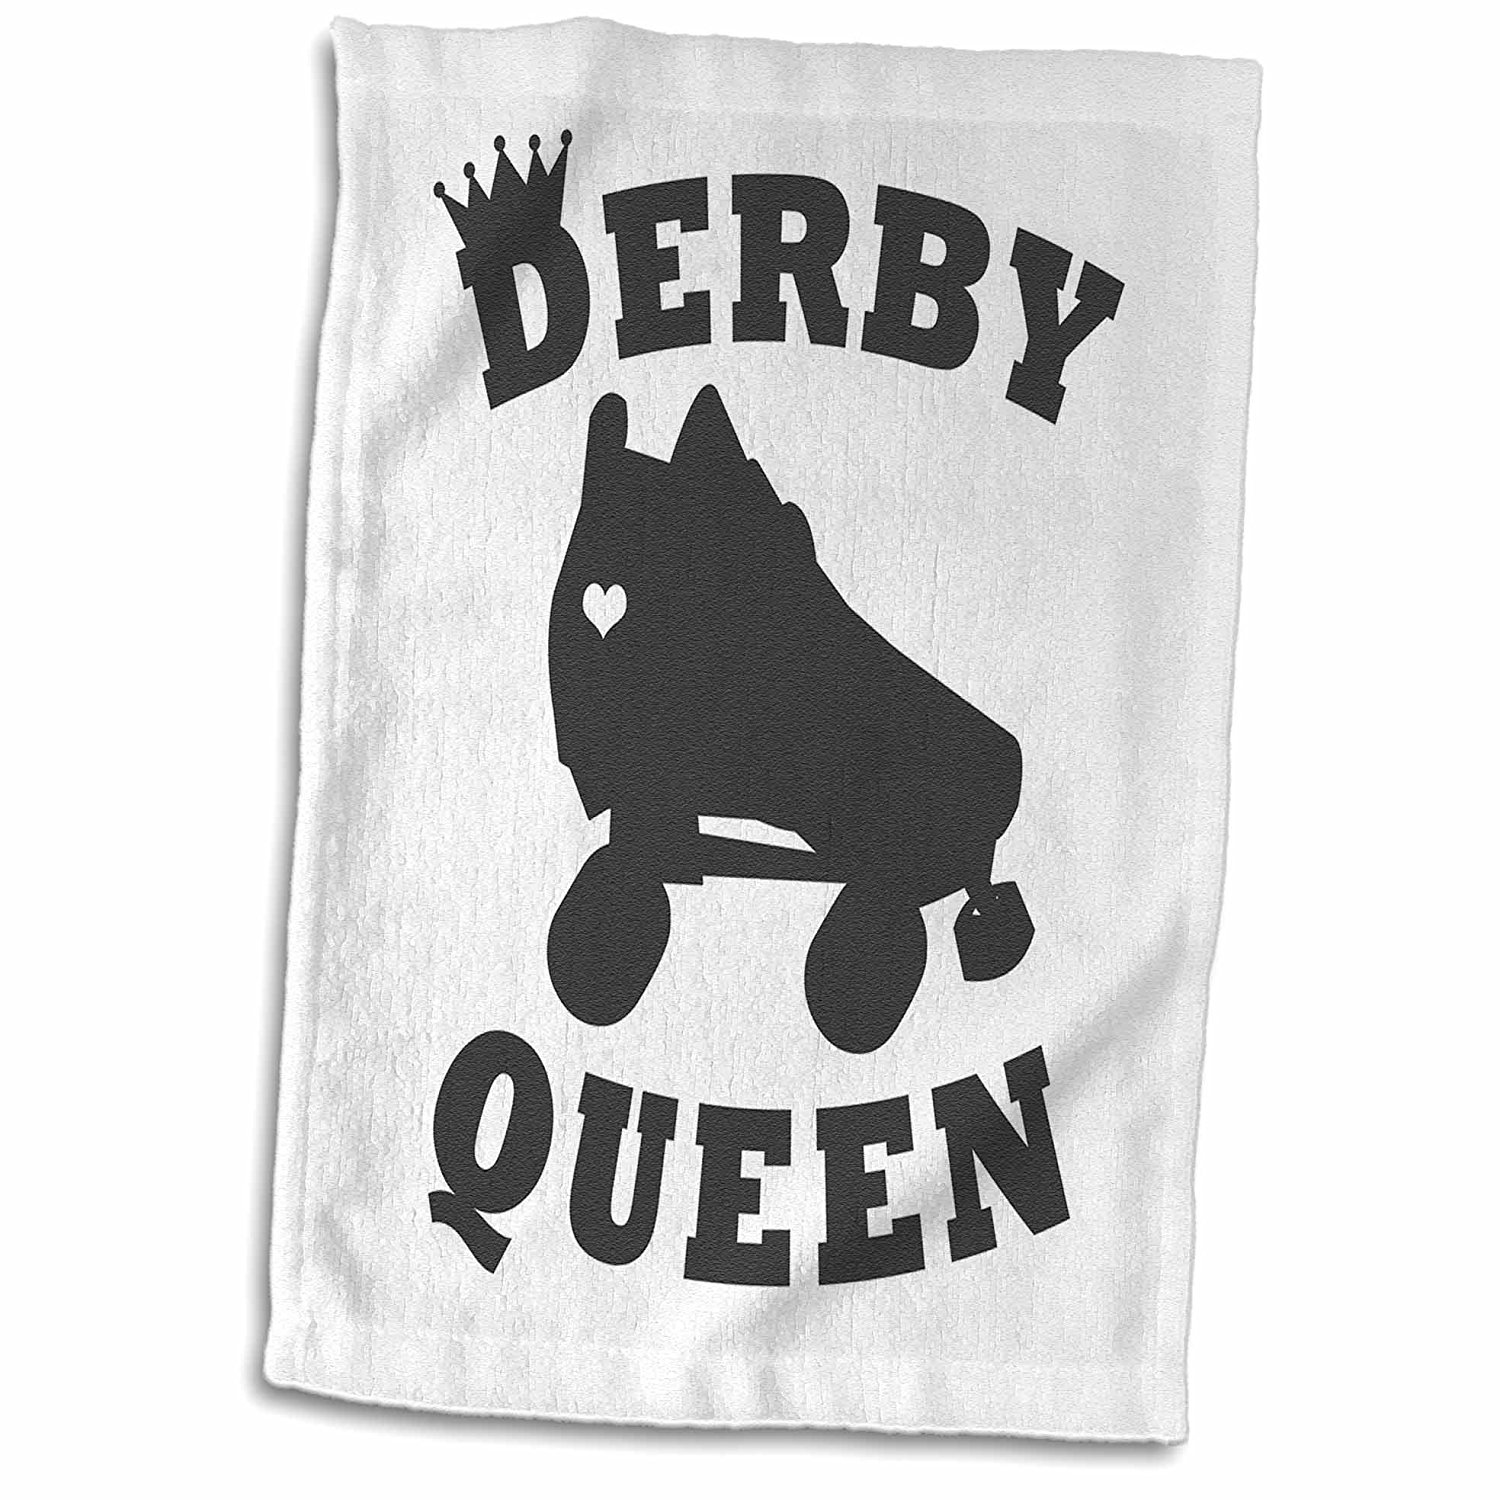 3dRose Janna Salak Designs Text Art - Roller Derby Queen - 15x22 Hand Towel (twl_261625_1)